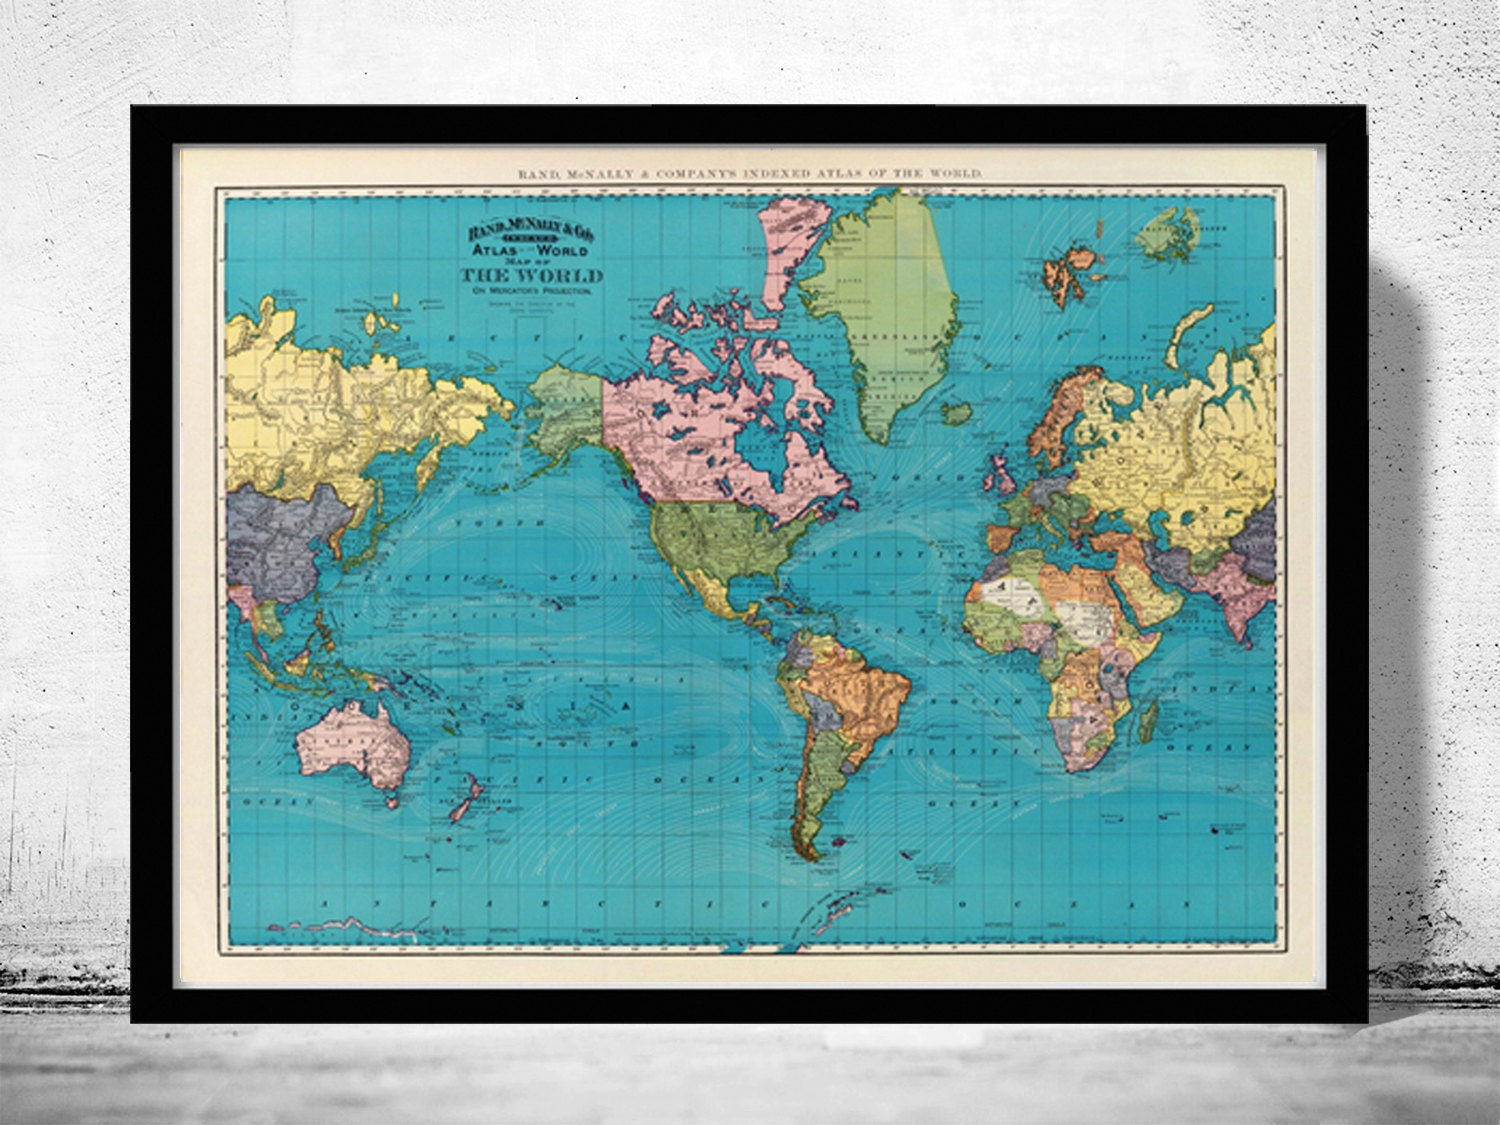 Old world map atlas vintage world map 1897 mercator projection zoom gumiabroncs Images